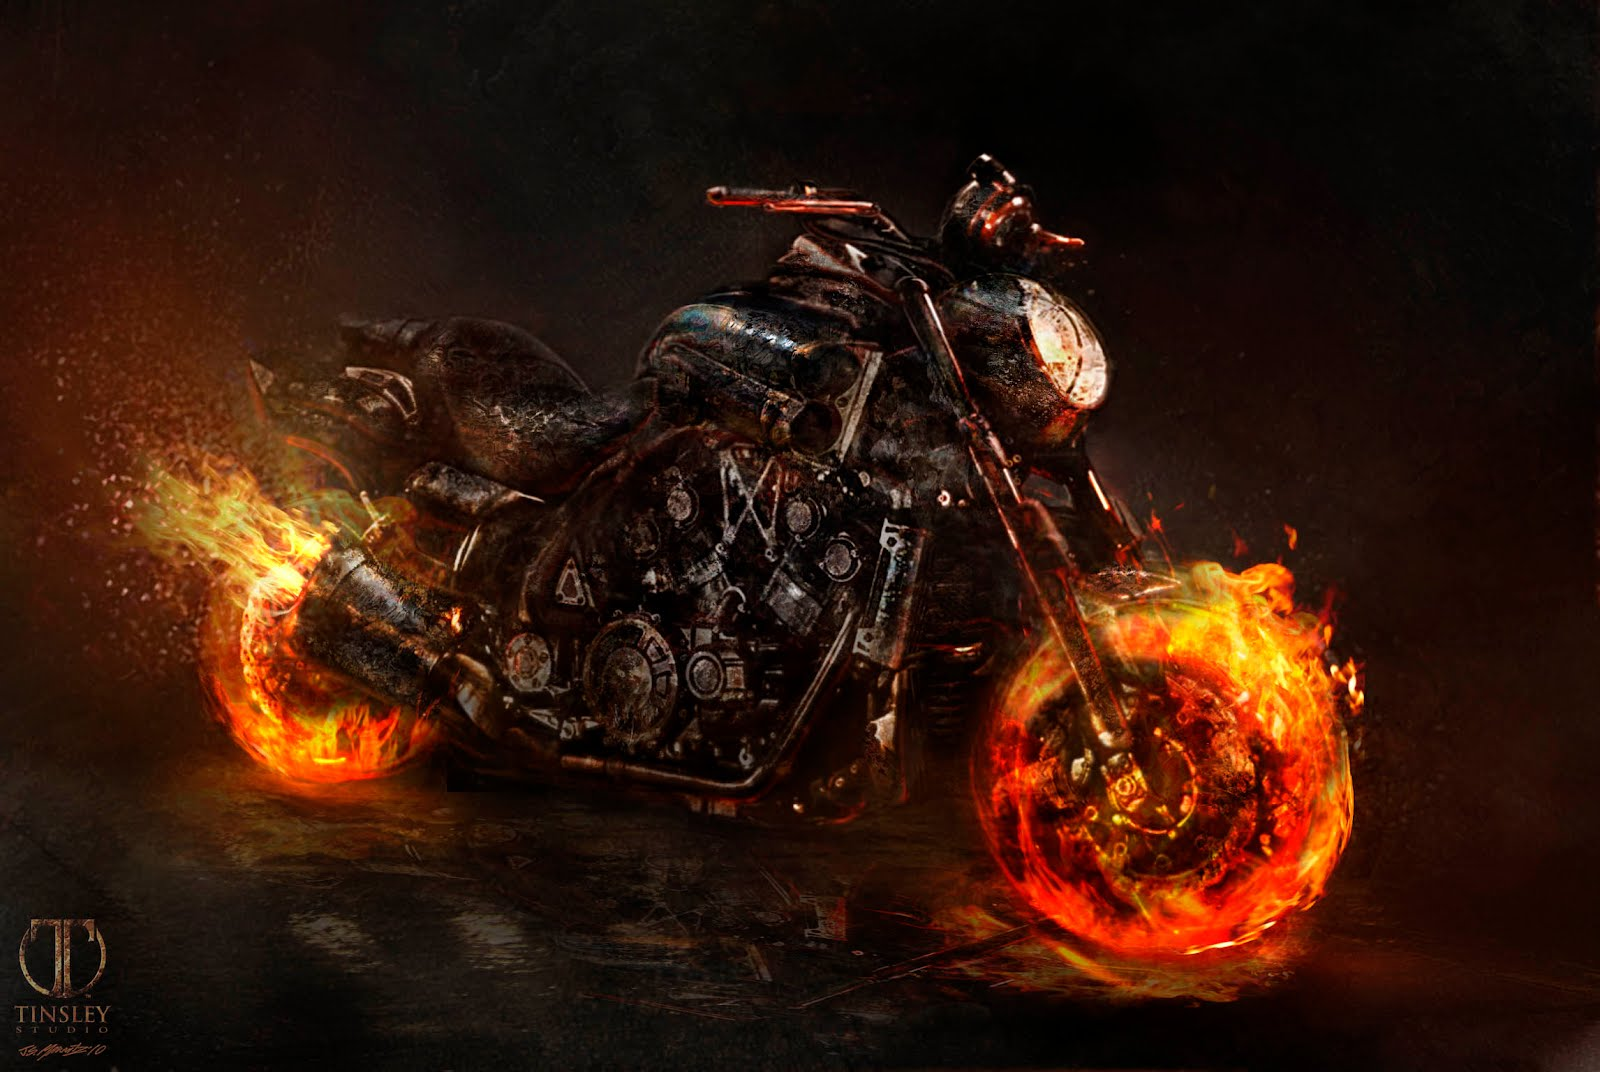 Jerad S Marantz Ghost Rider Spirit of Vengeance designs 1600x1072